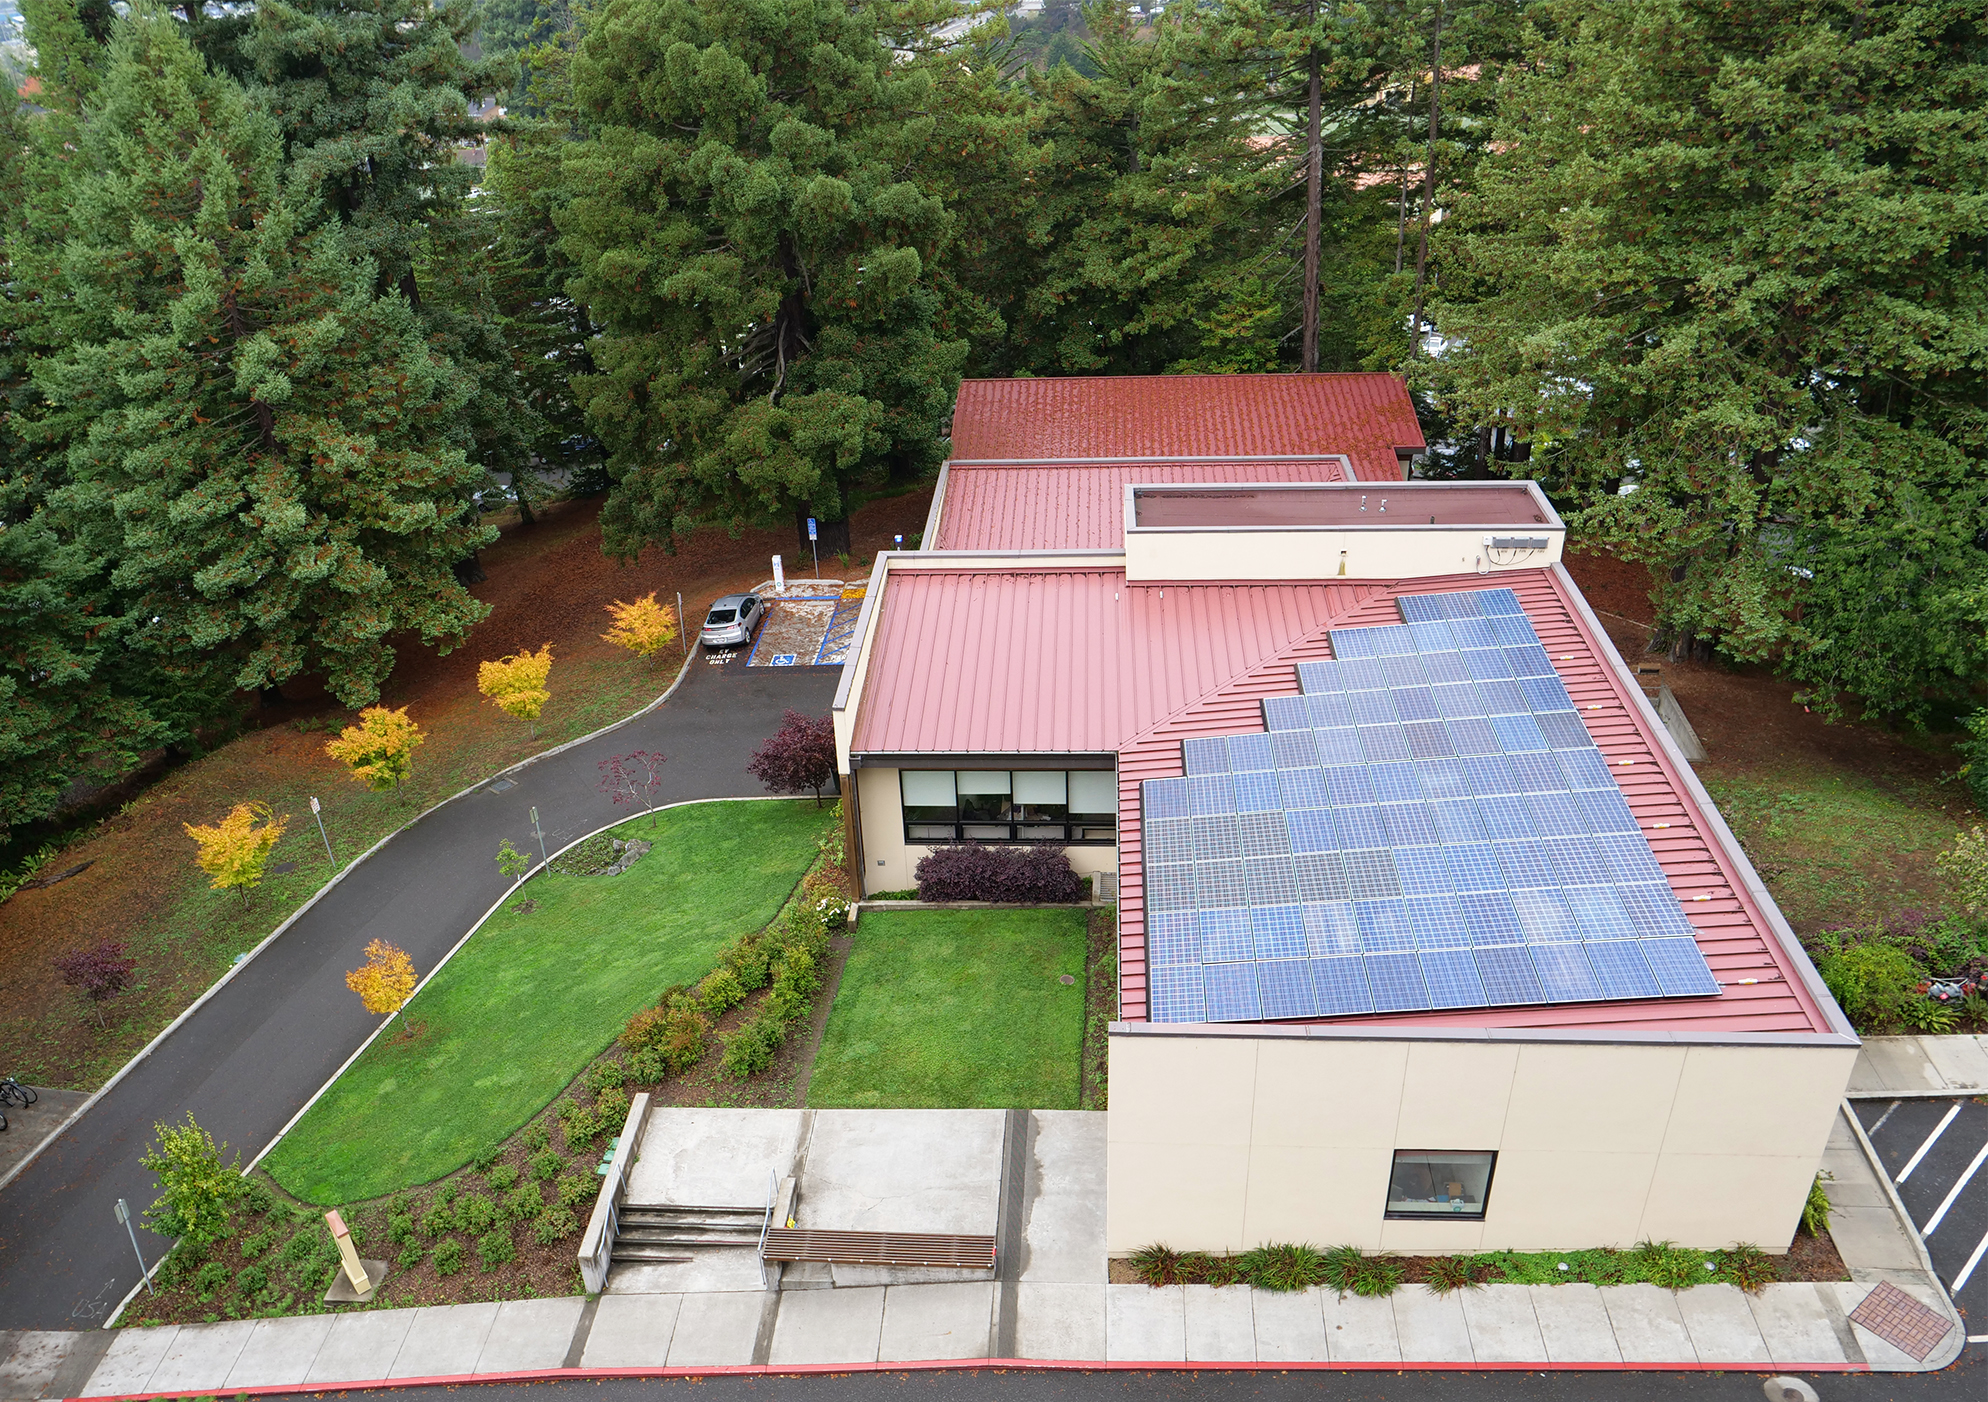 Overhead view of Schatz Center facilities